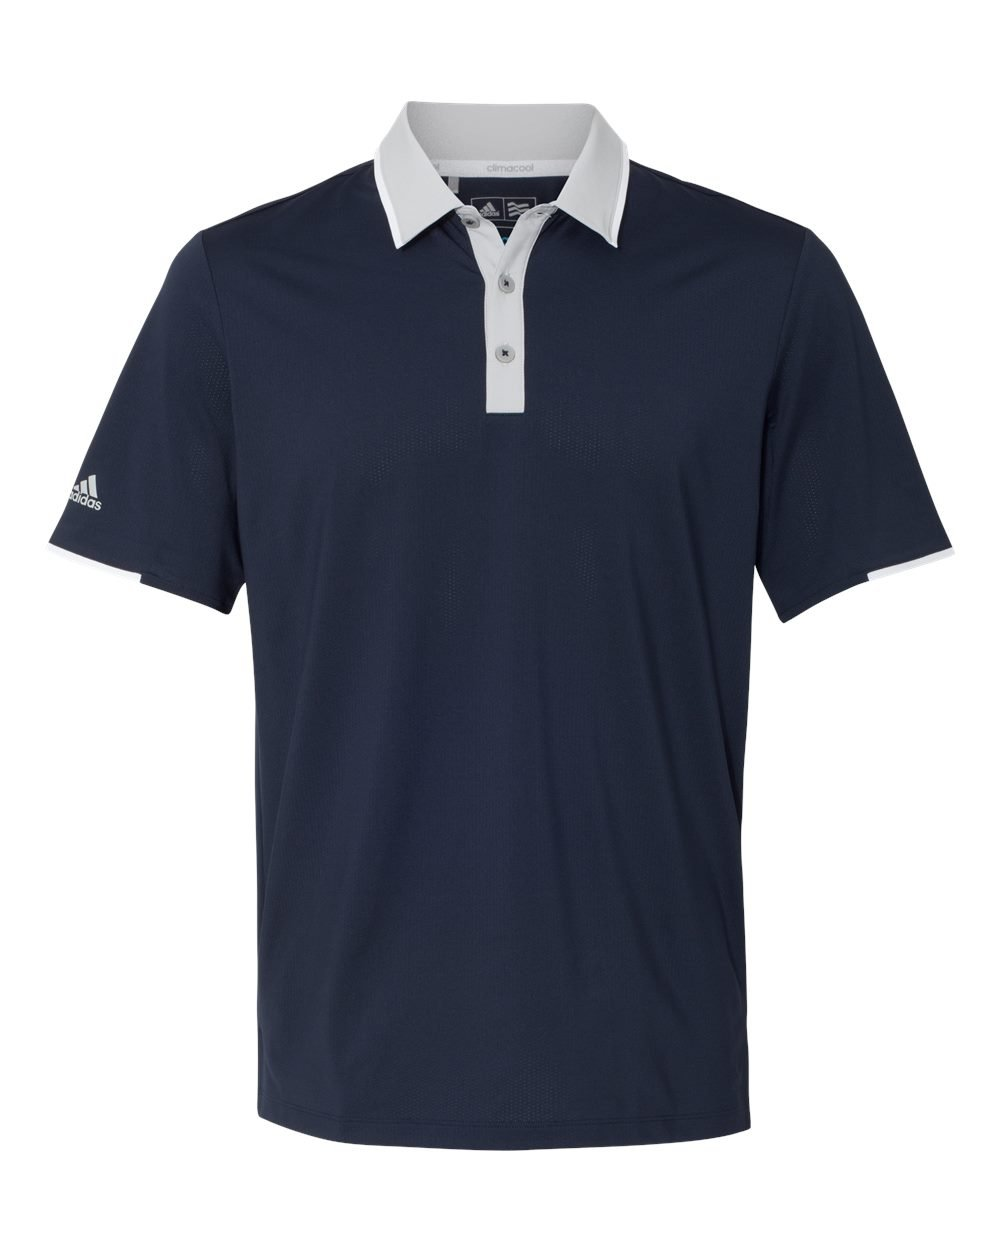 adidas Golf Mens Climacool Performance Polo (A166) -Navy/Stone -3XL